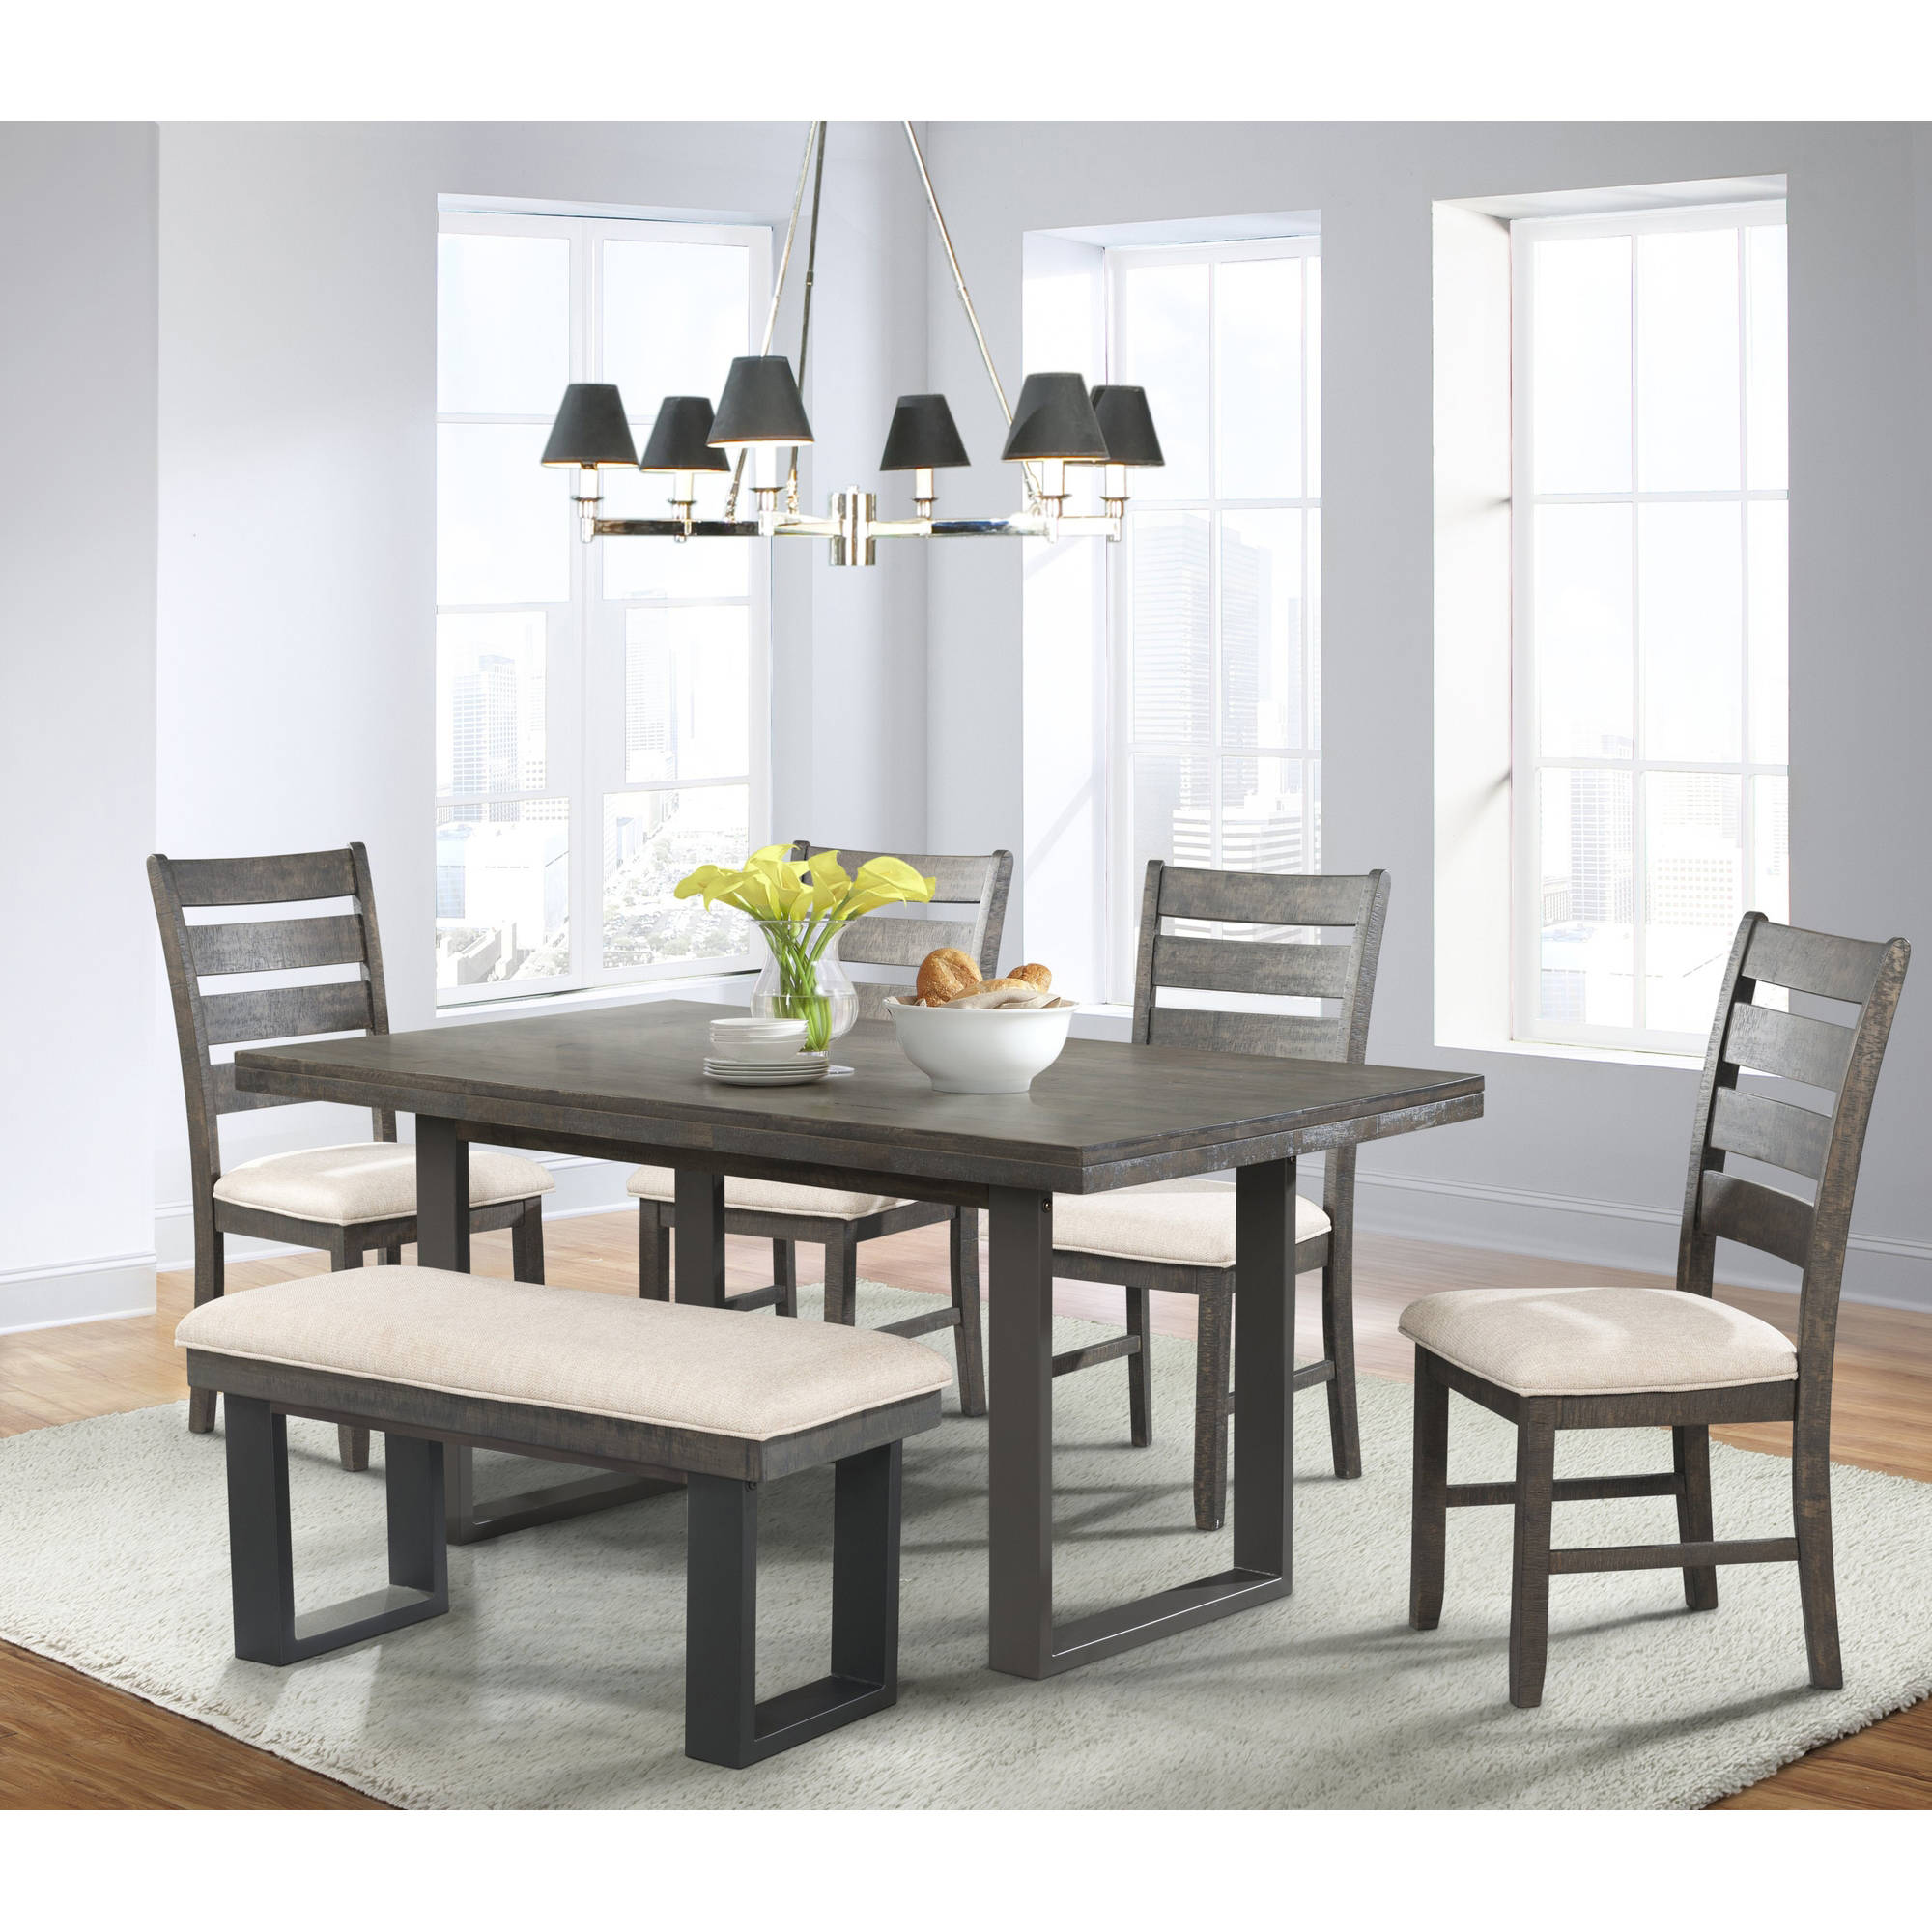 Picket House Furnishings Sullivan 6 Piece Dining Set With Table, 4 Side  Chairs And Bench